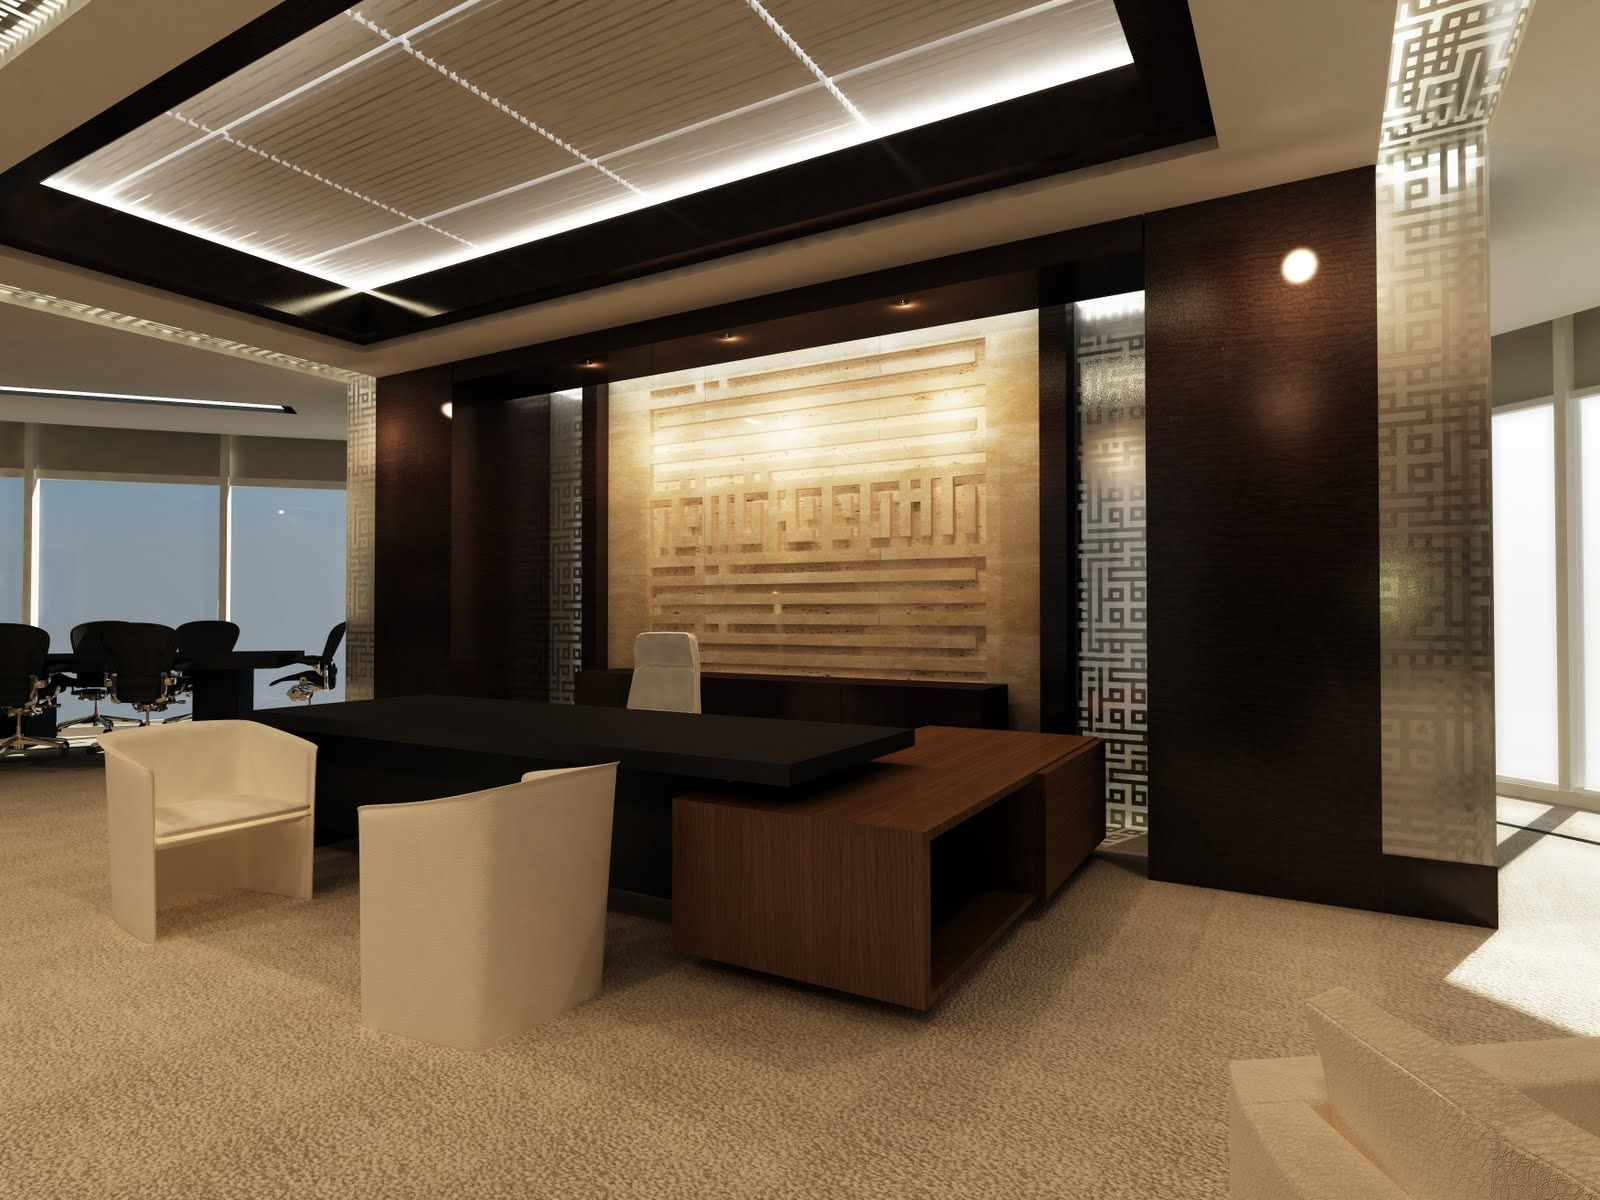 office interior designing. Office Interior Design Intended For Ideas Mrliu Designing